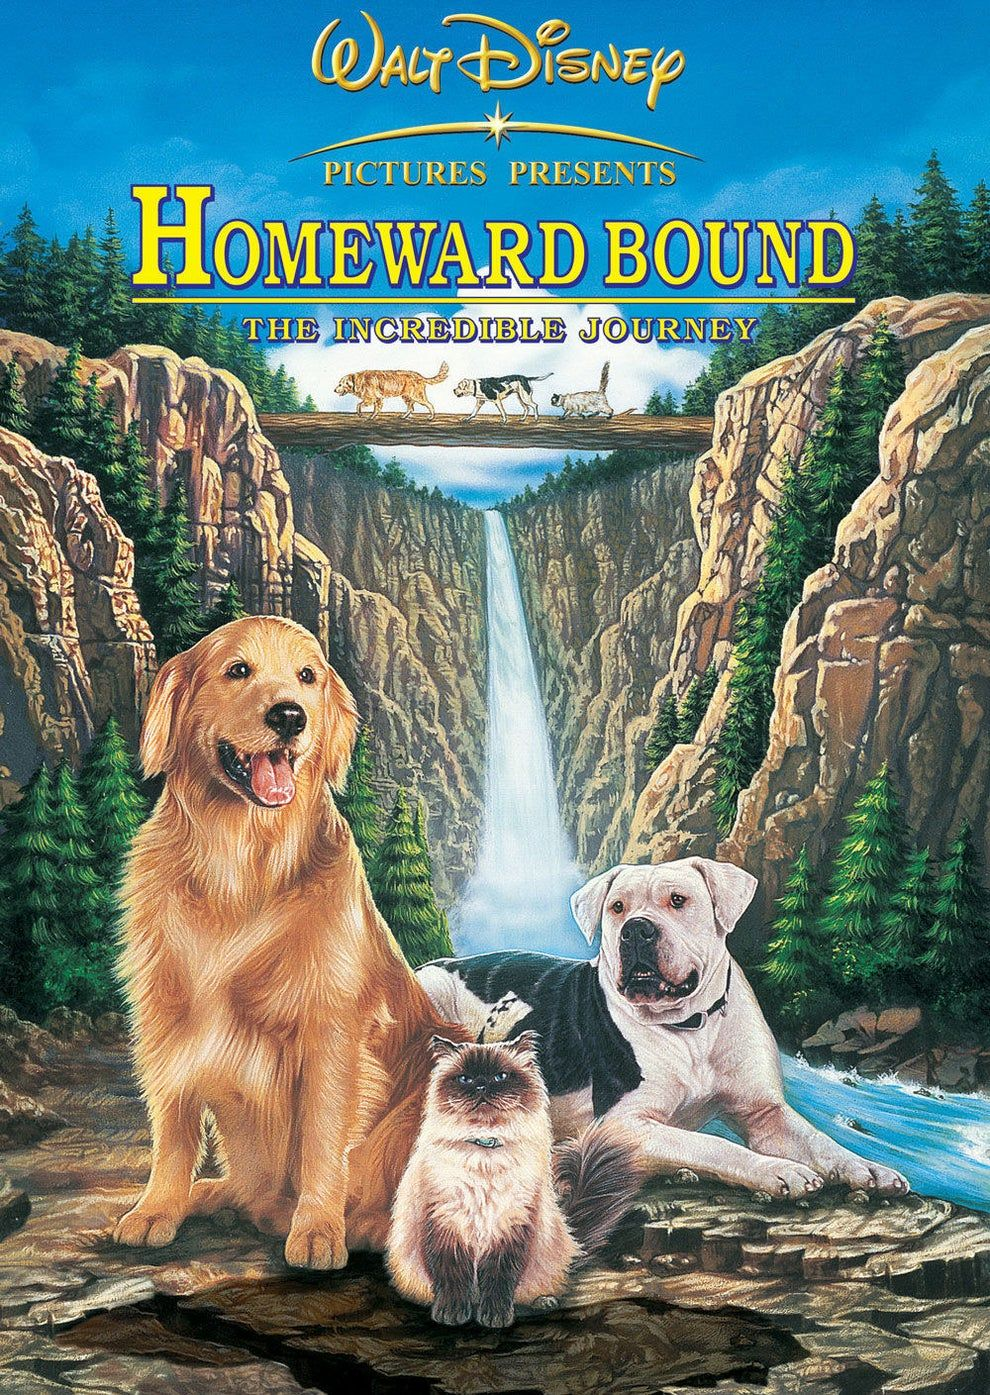 50 Movies You Forgot You Watched On Repeat As A Kid Disney Live Action Films The Incredibles Homeward Bound Movie